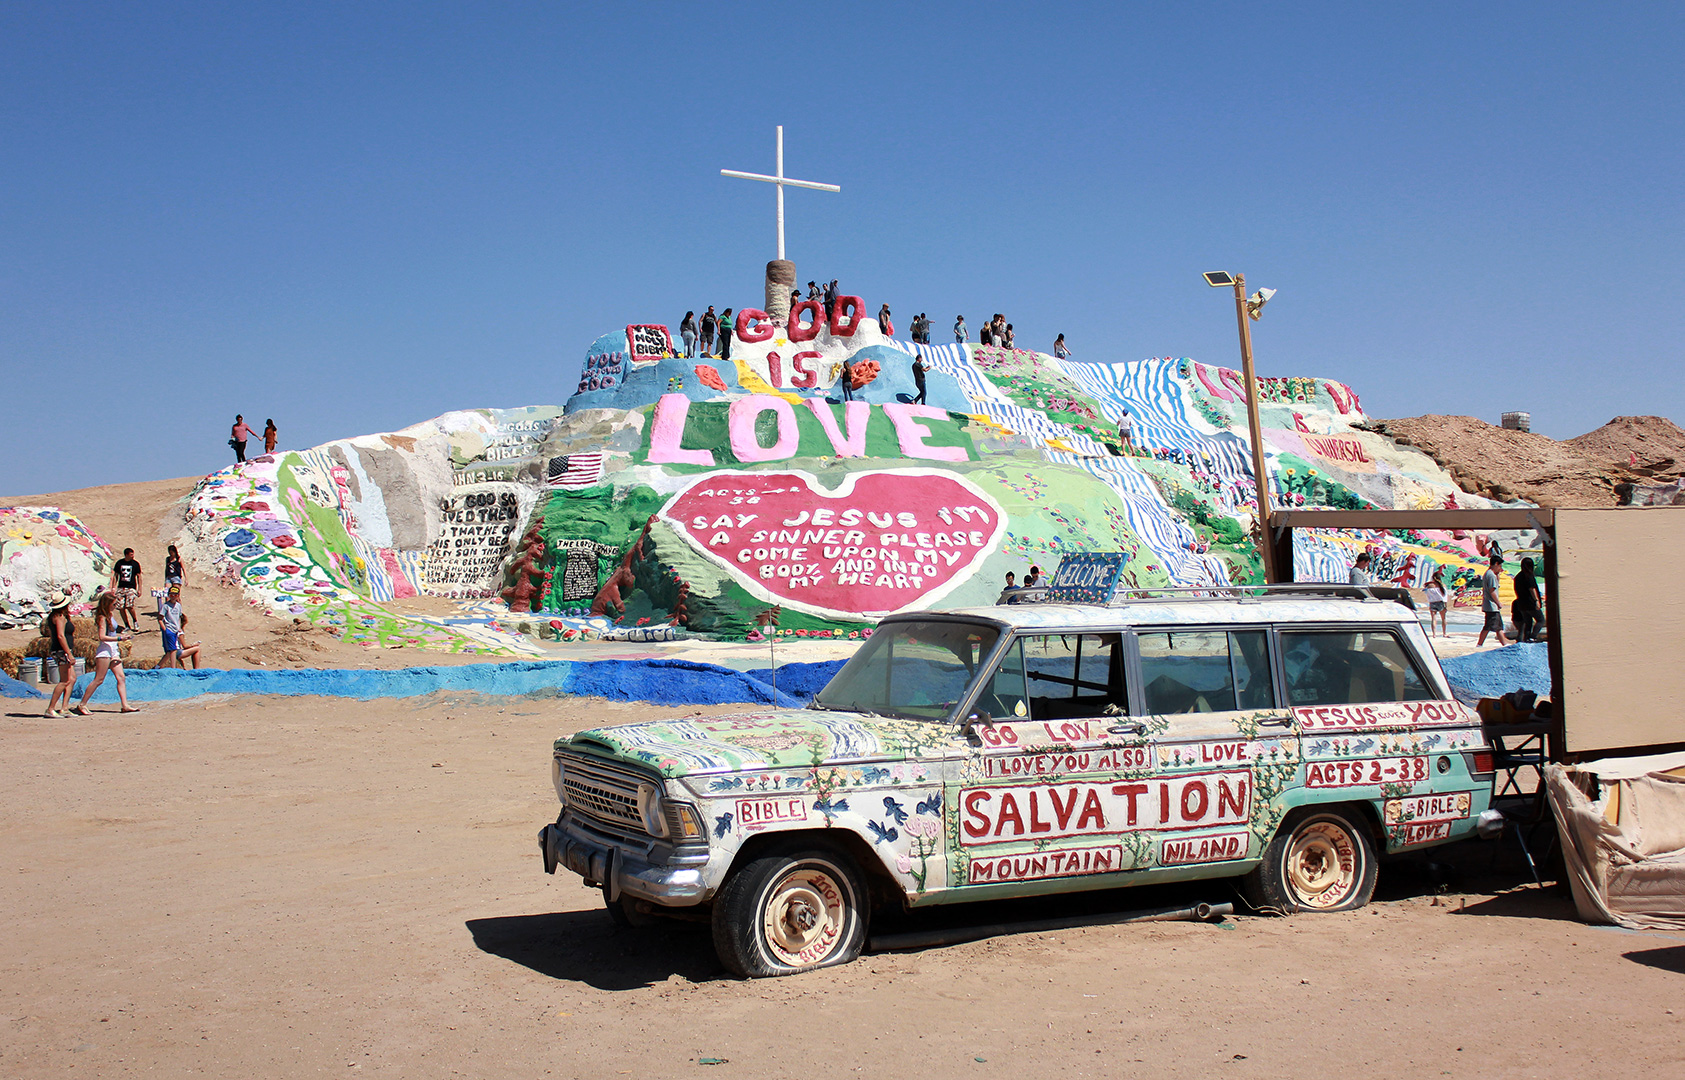 Salvation Mountain has its own Salvation Car! ;)